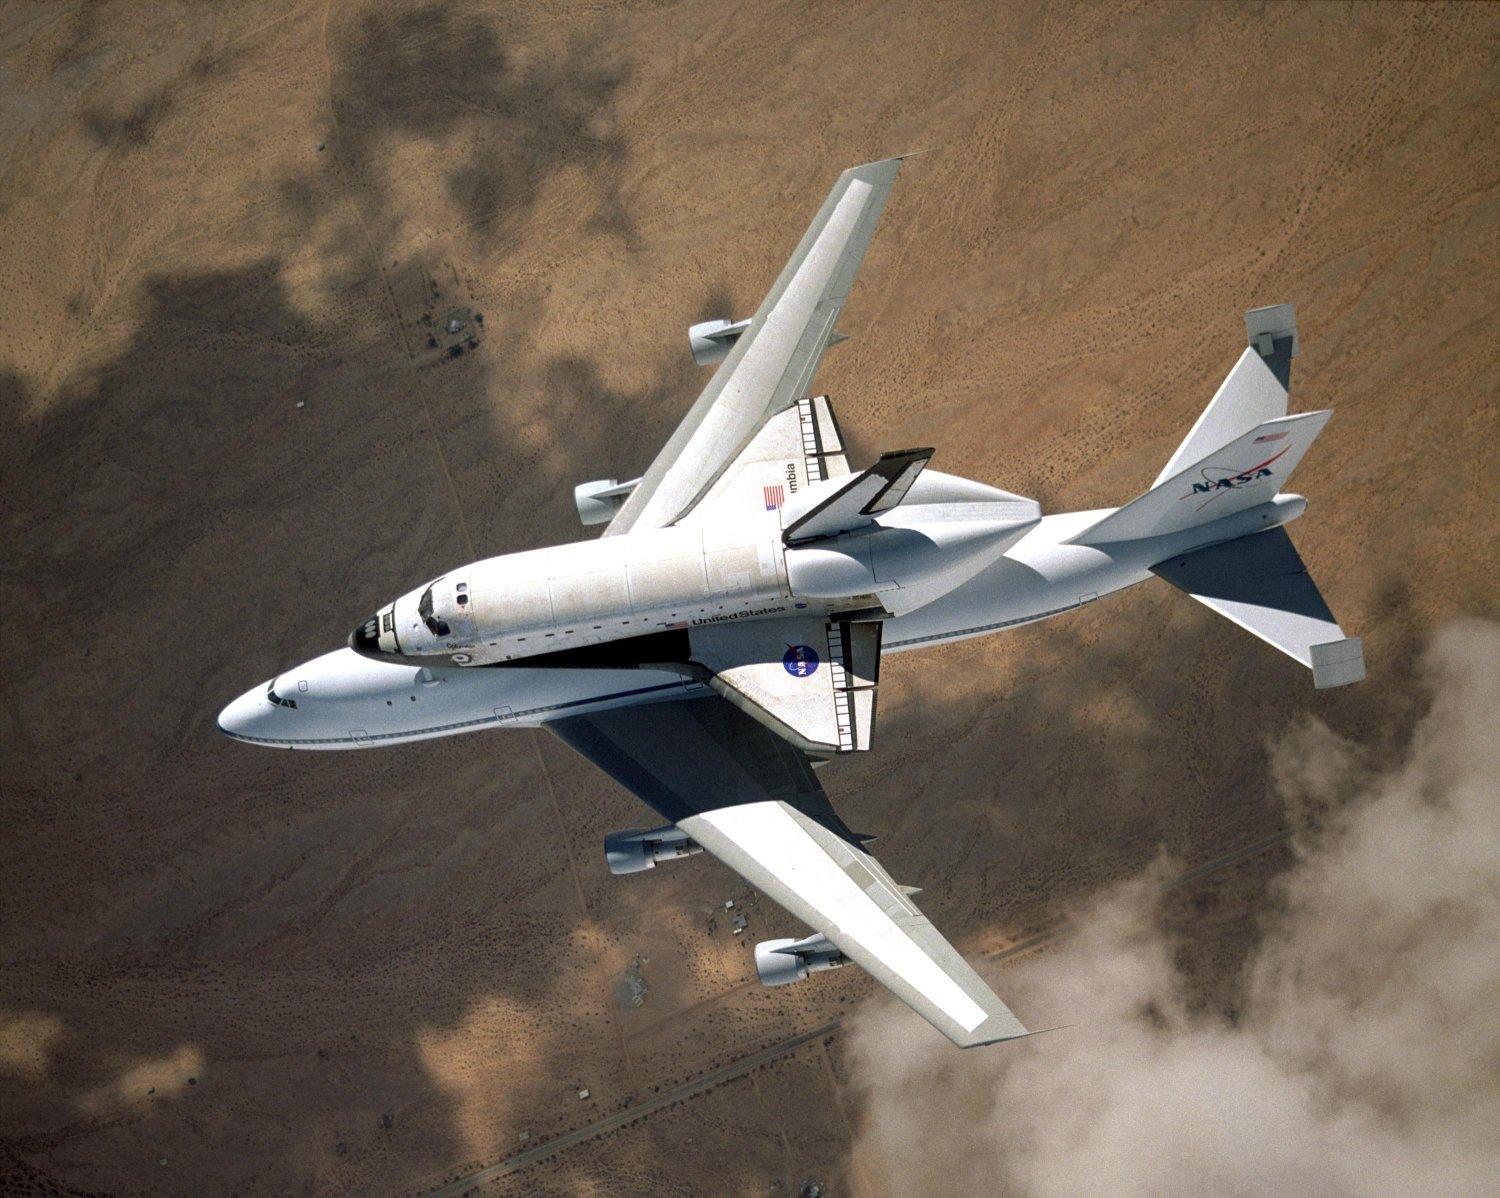 SPACE SHUTTLE COLUMBIA ON CARRIER AIRCRAFT TO KSC - 8X10 NASA PHOTO (EP-406)